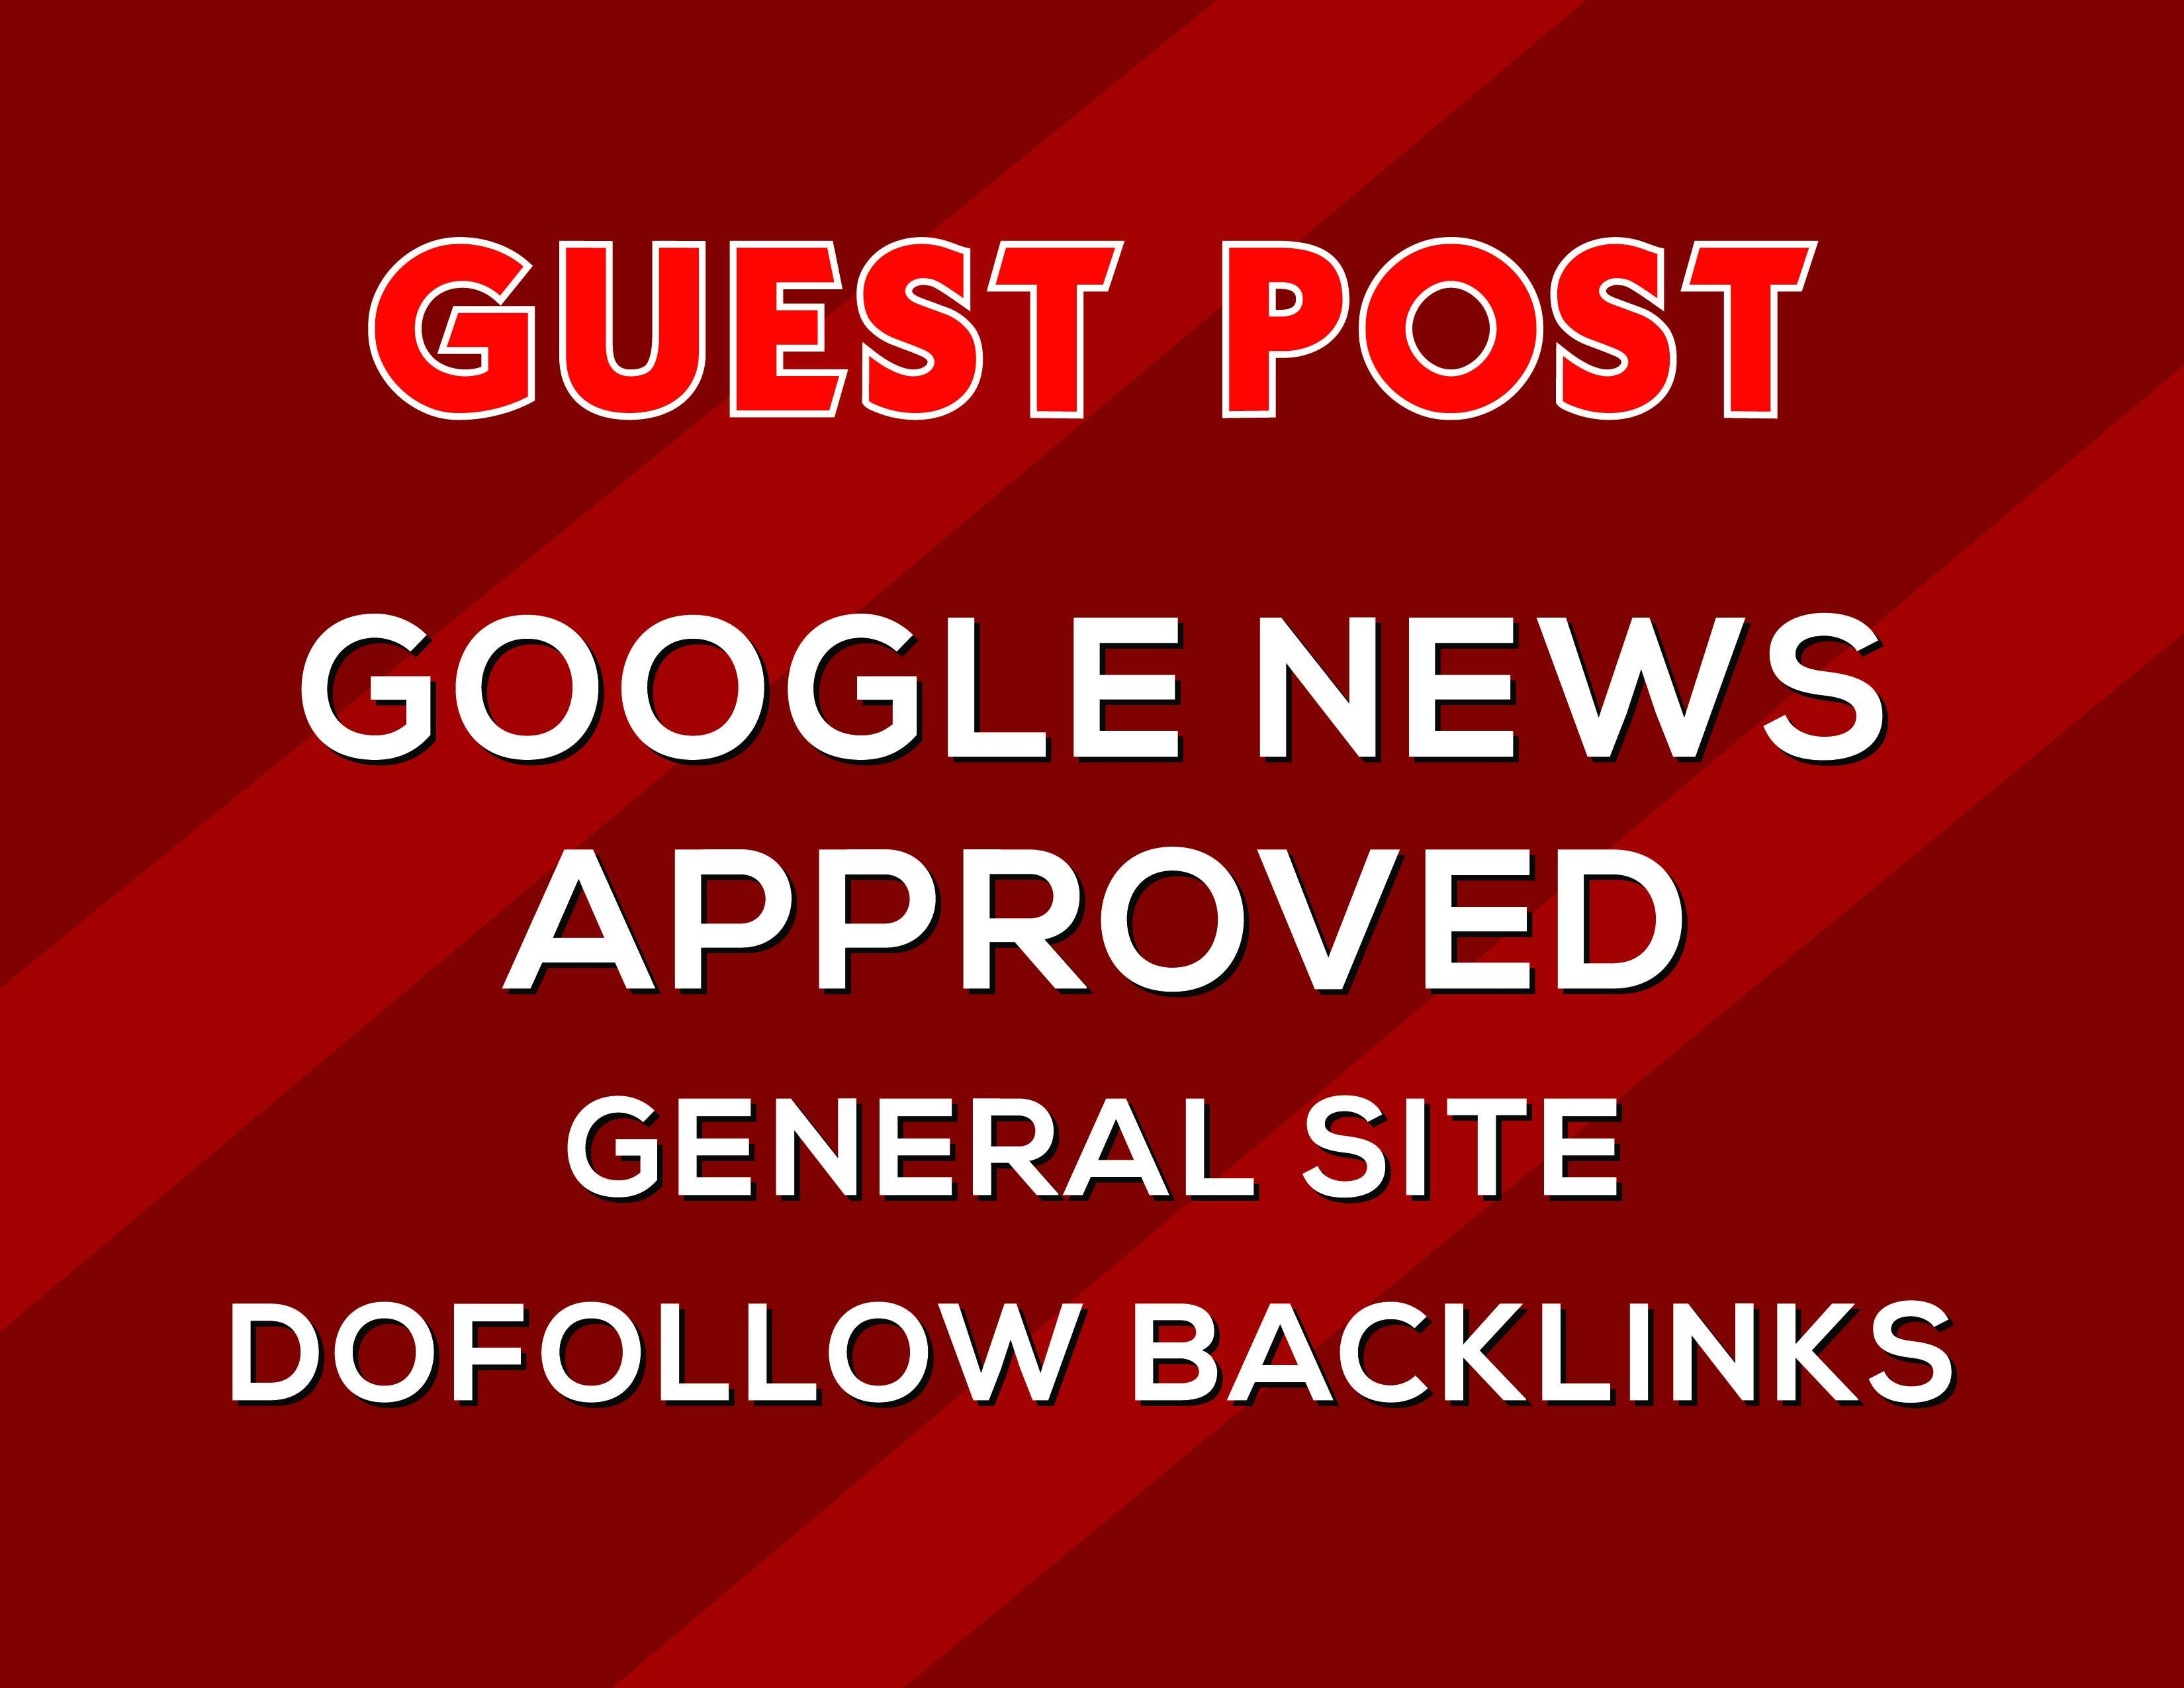 Provide guest post on kinnt. com google approved news site da 57 dr 59 permanent backlink